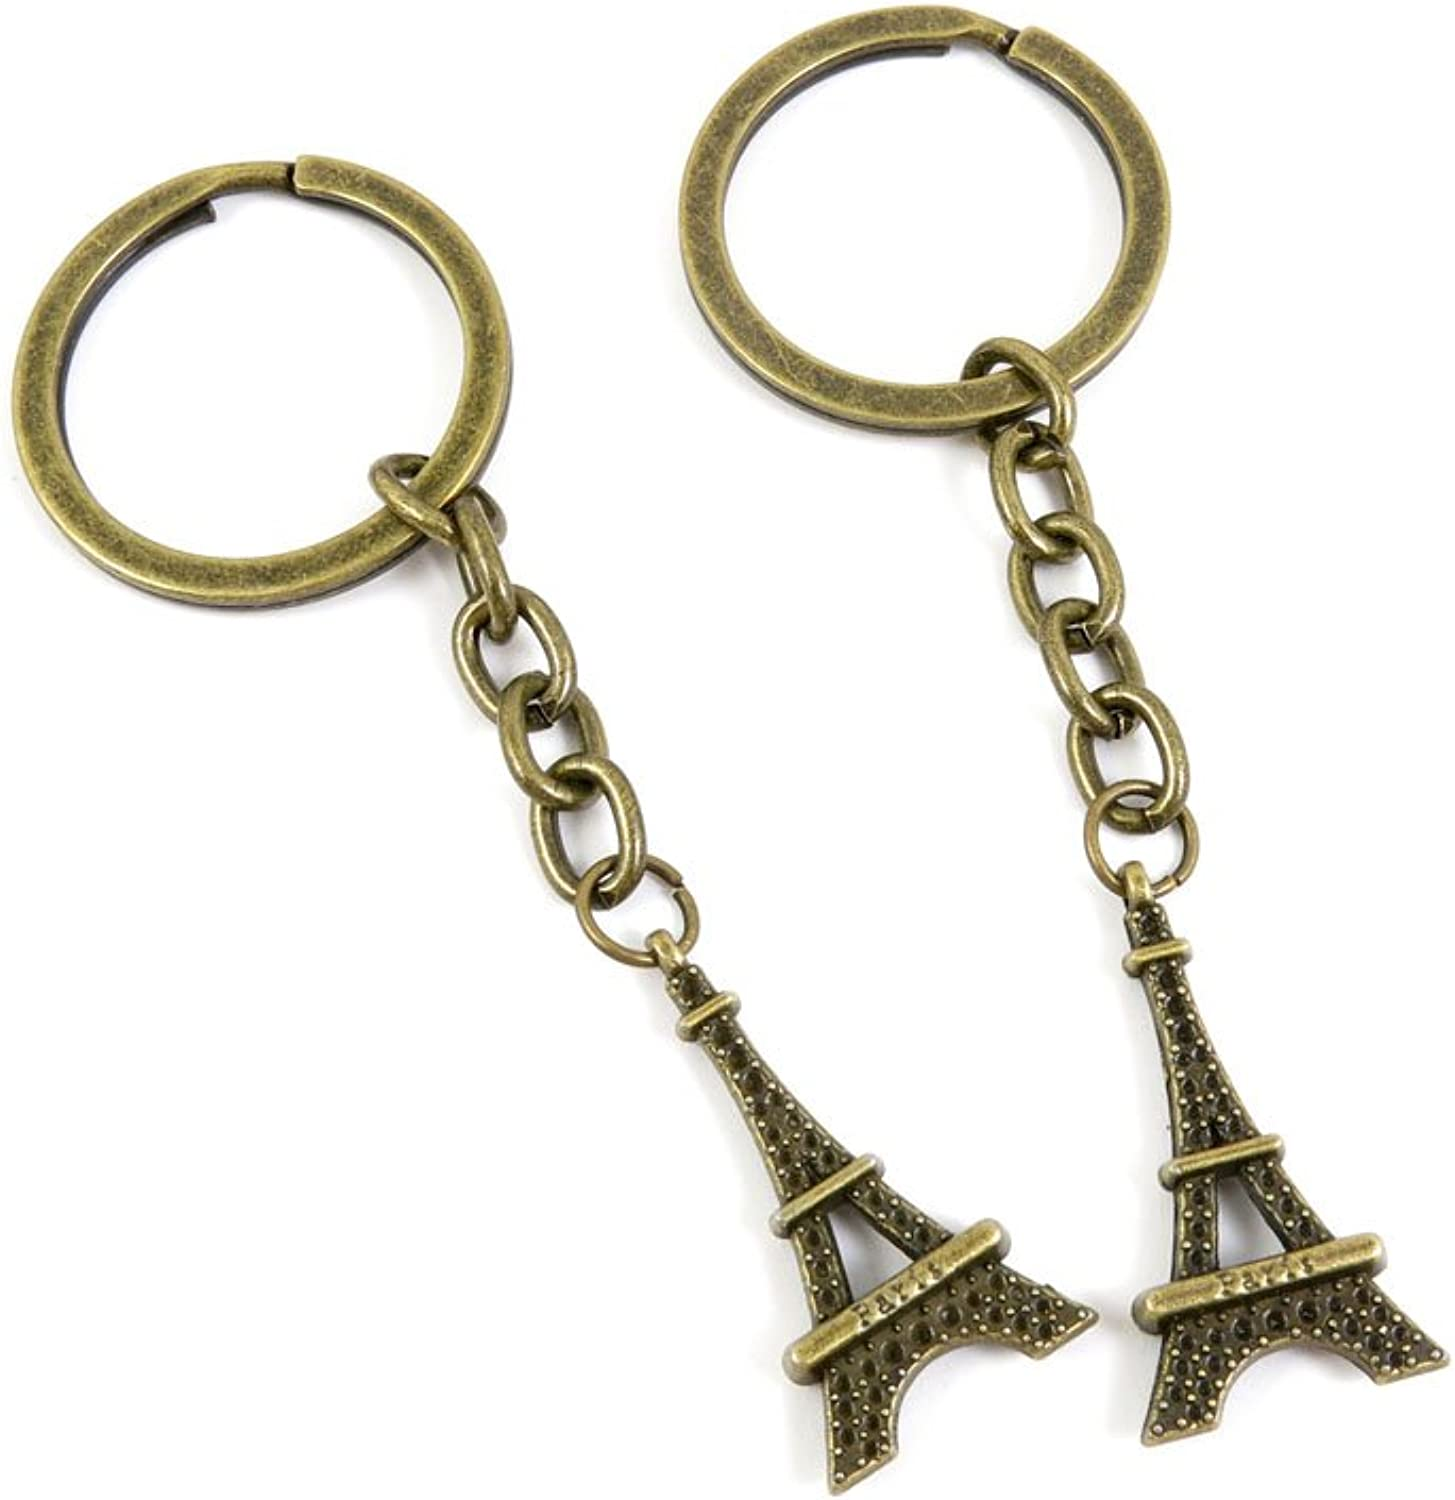 80 PCS Keyring Car Door Key Ring Tag Chain Keychain Wholesale Suppliers Charms Handmade D7GB4 Paris Eiffel Tower